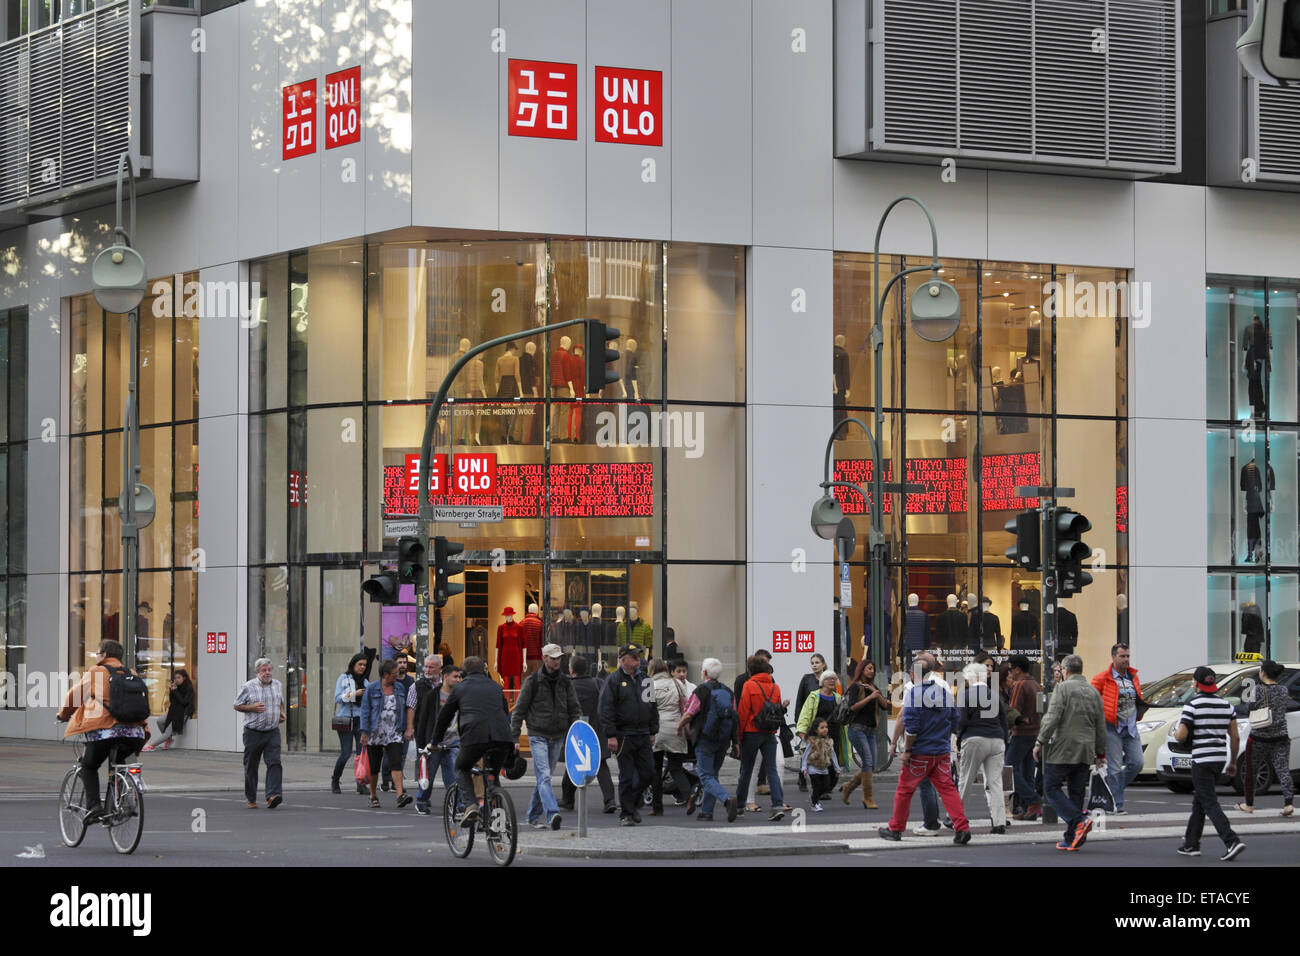 Berlin, Germany, Uniqlo Clothing Store On Tauentzien Stock Photo ...